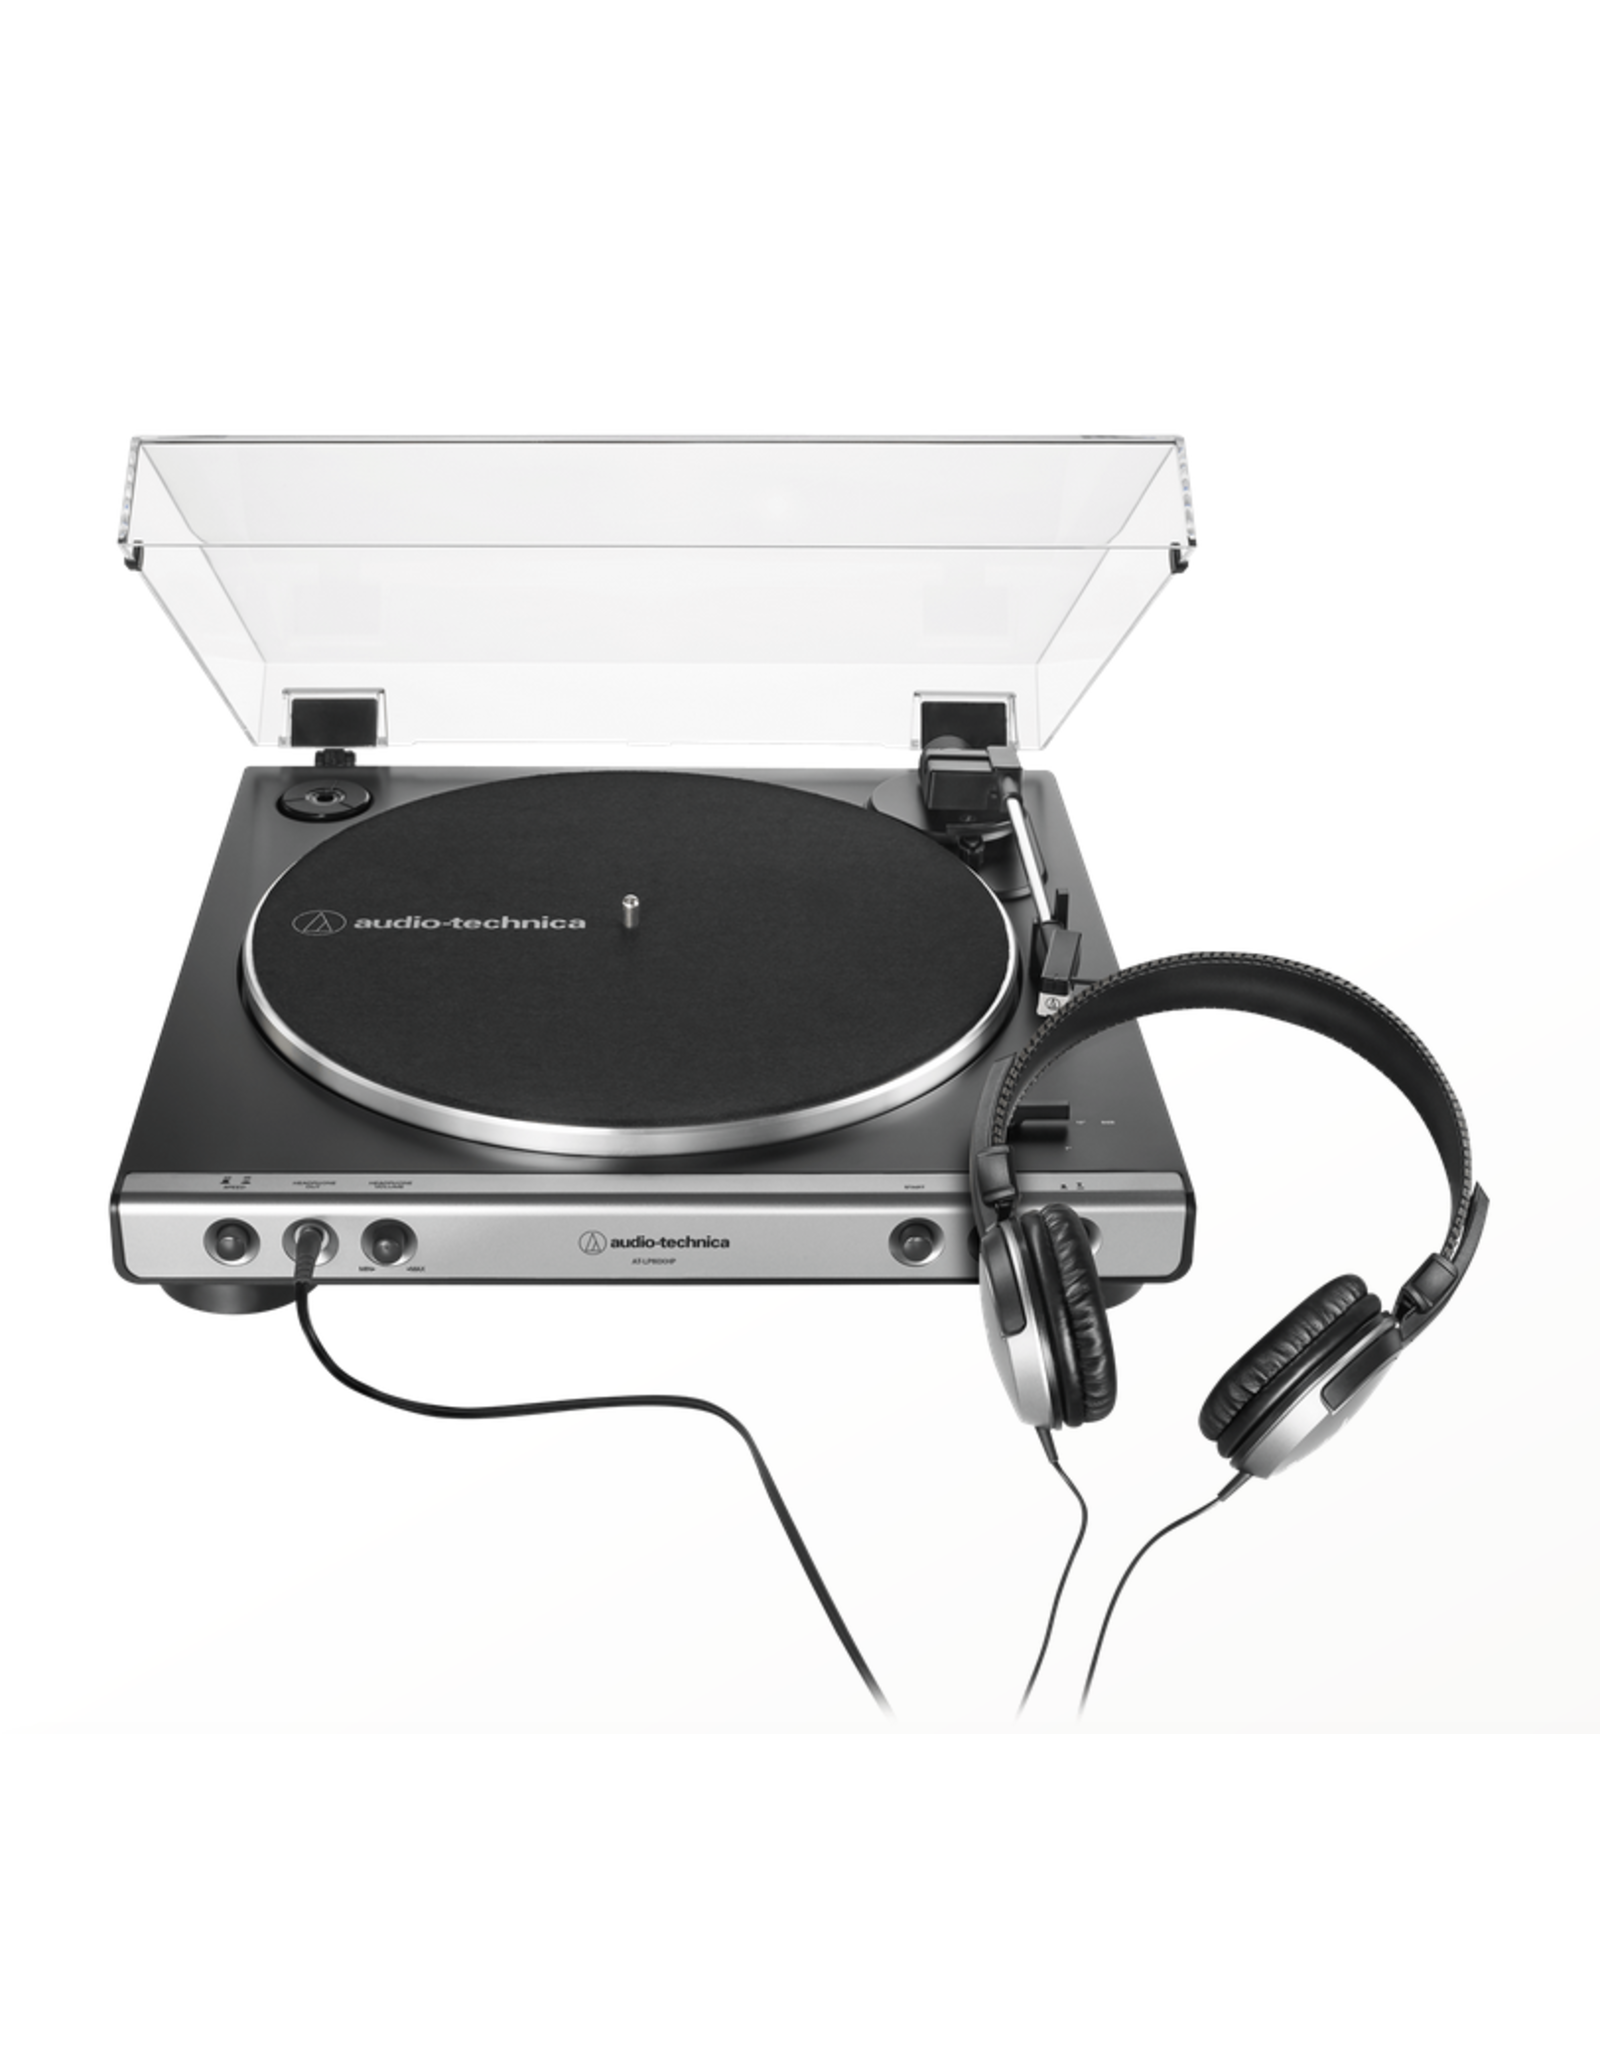 Audio-Technica Audio-Technica AT-LP60XHP Fully Automatic Belt-Drive Turntable with ATH-250AV Headphones